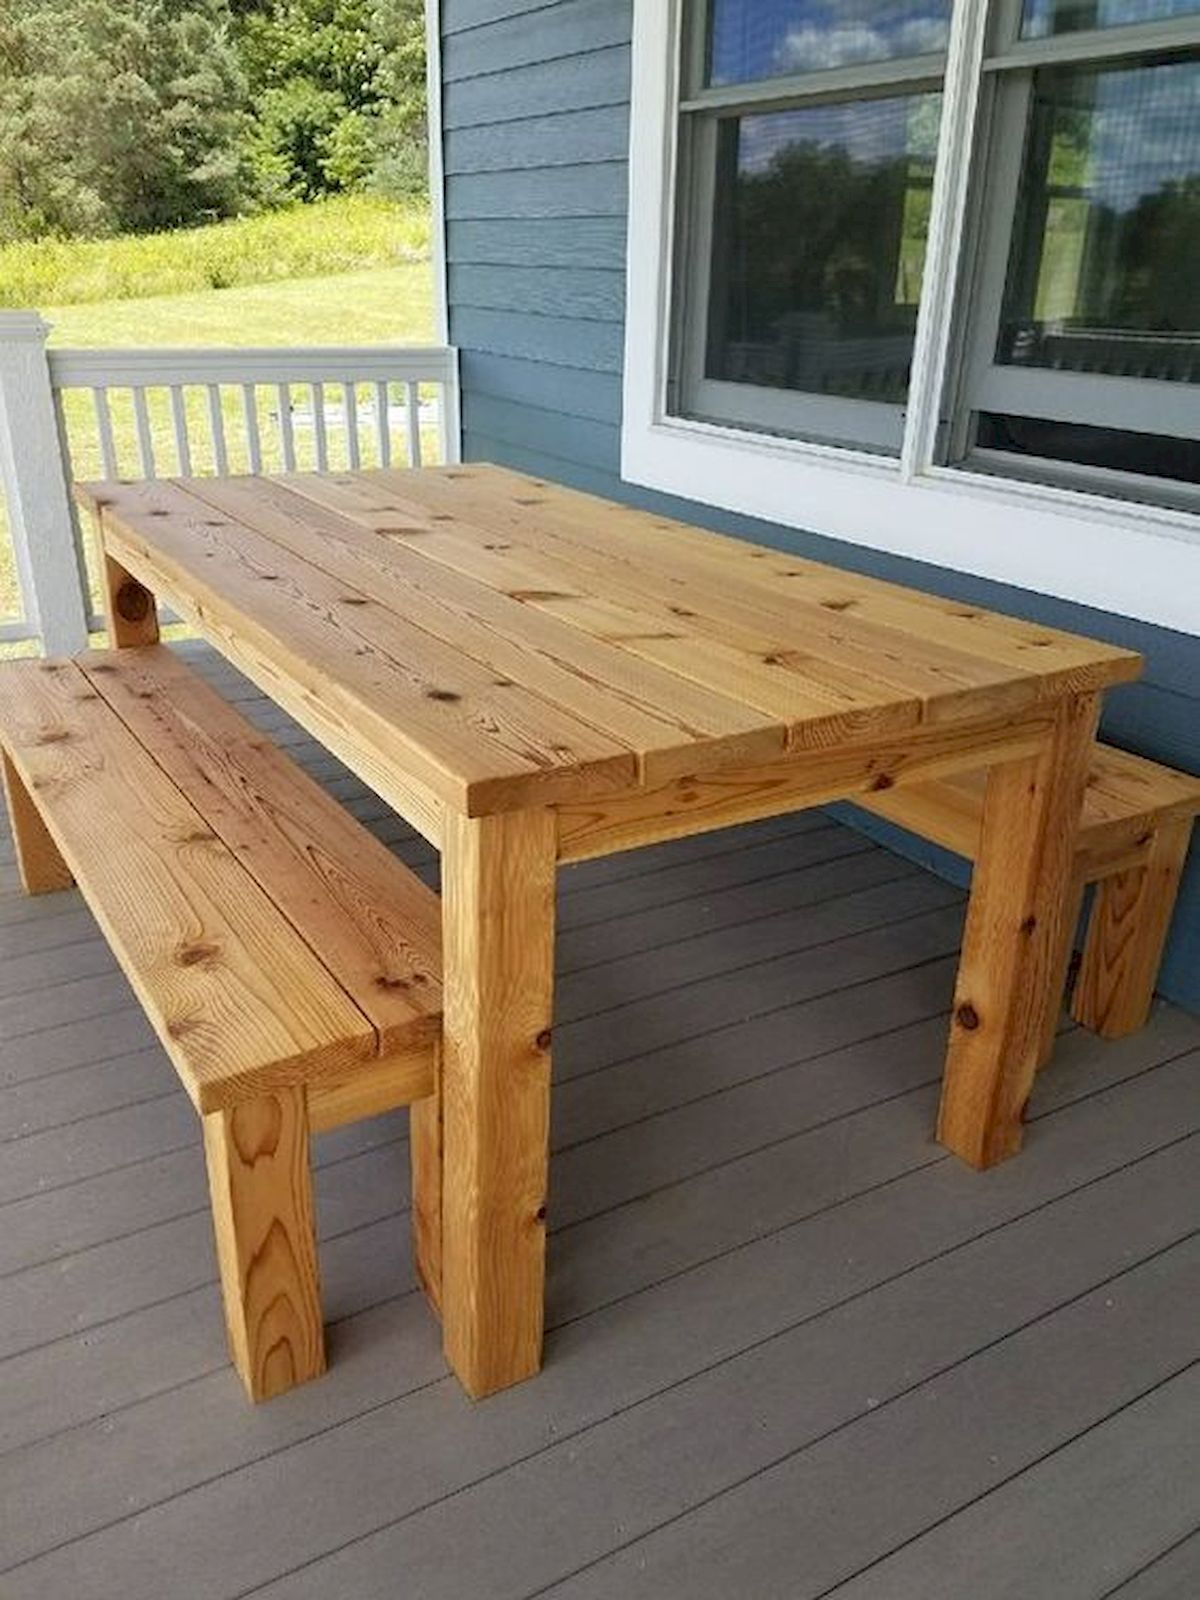 60 Amazing Diy Projects Outdoors Furniture Design Ideas Pallet Furniture Outdoor Outdoor Furniture Plans Woodworking Projects Furniture